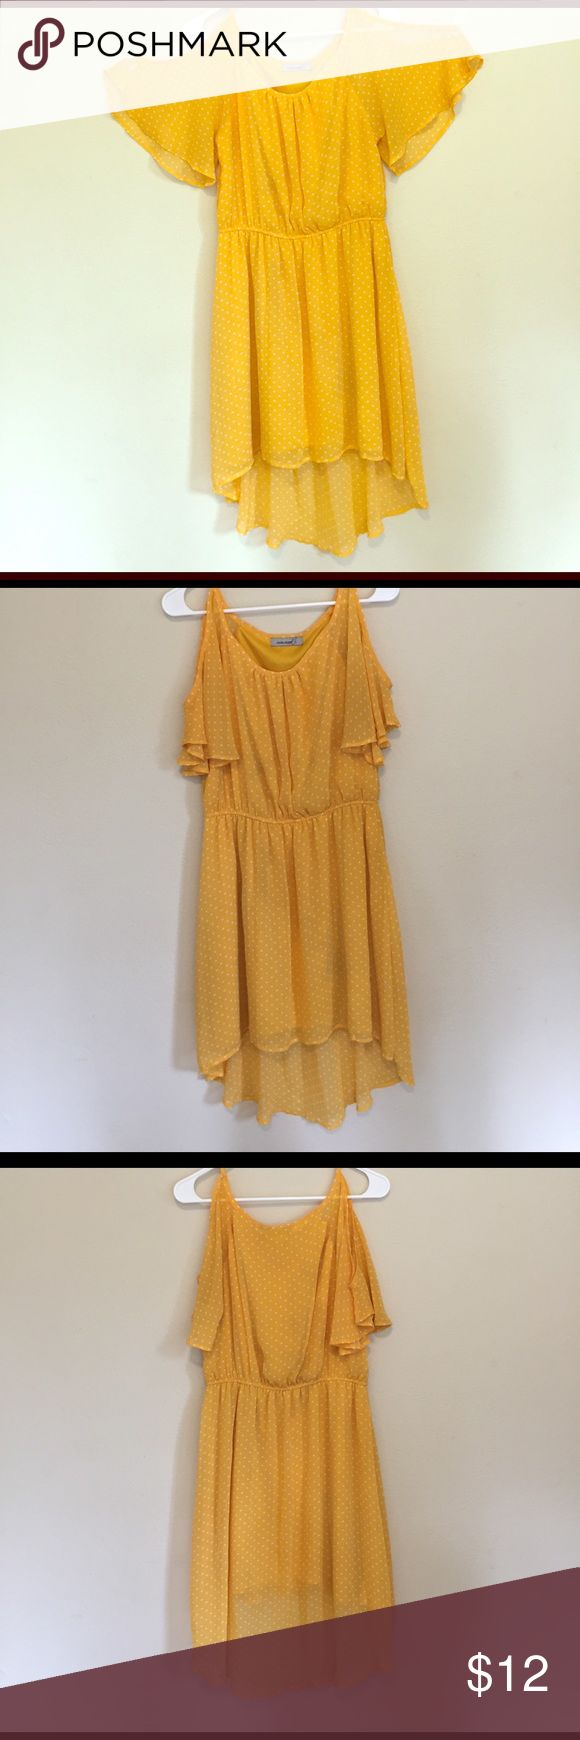 Level 8 yellow and white polka dot dress Fun, flirty sleeves. It has a high-low hem. Elastic waistband. This dress did not come with a size tag so I am guessing it is a medium. It is a pre-loved dress in great condition. Yellow with white polka dots. Bright and cheerful for a spring or summer day! level 8 Dresses High Low